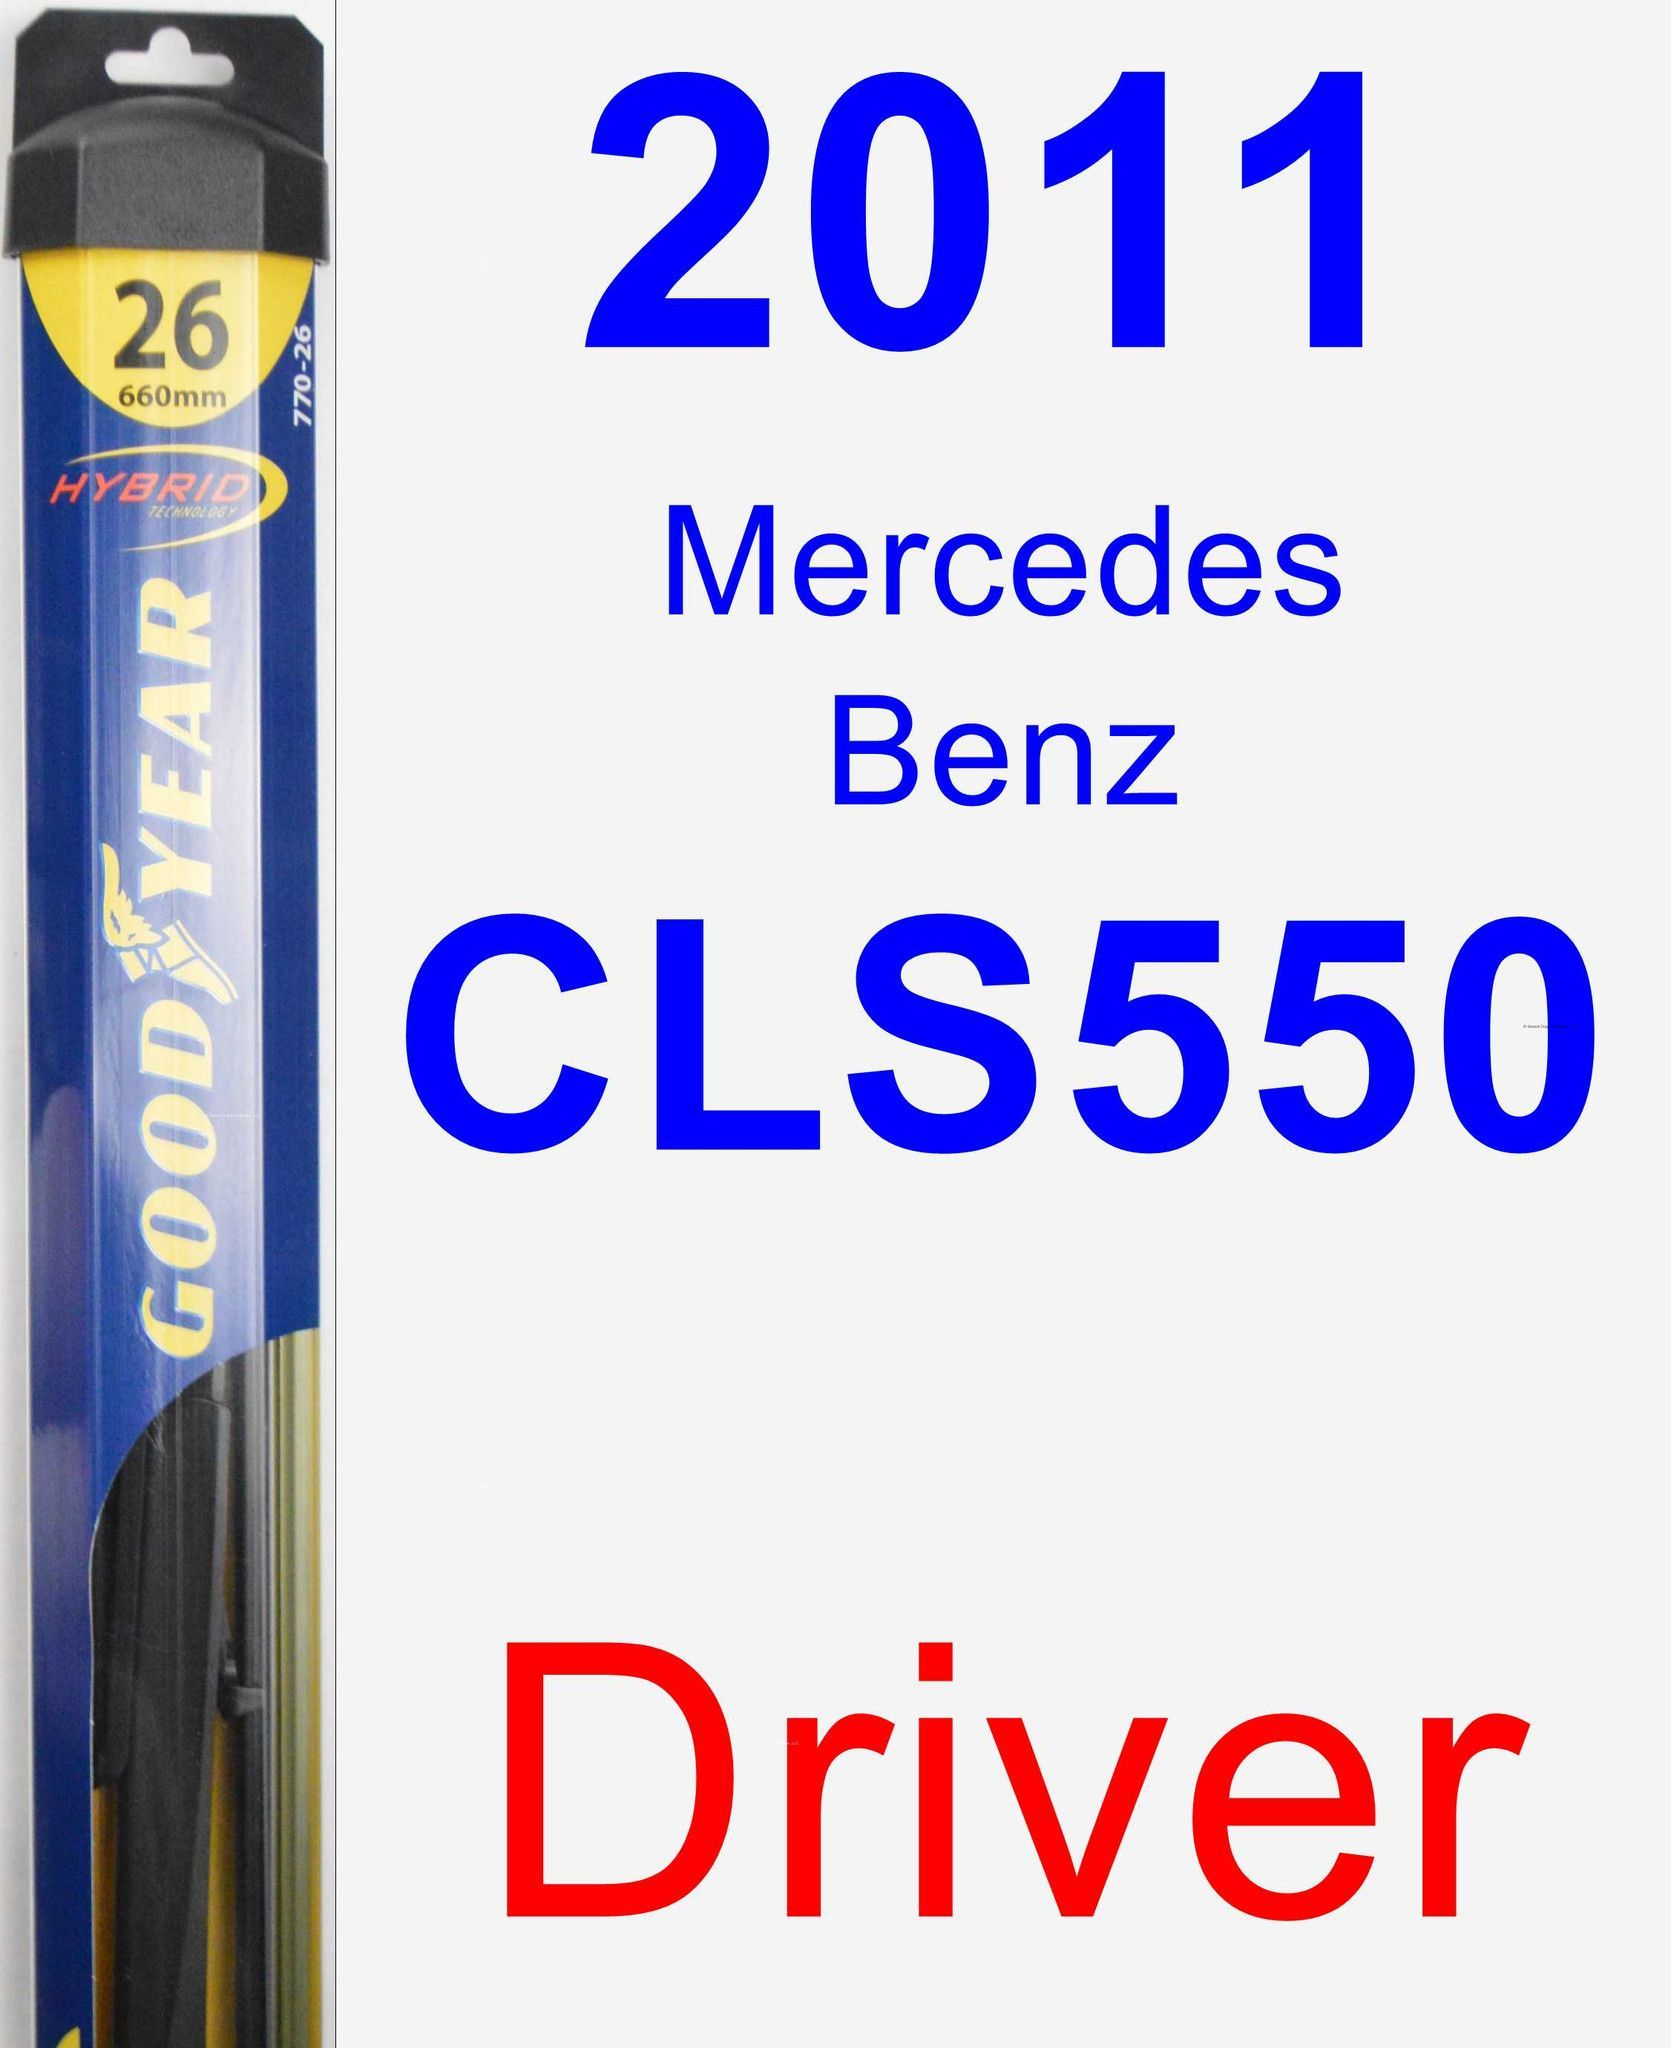 Driver Wiper Blade for 2011 Mercedes-Benz CLS550 - Hybrid